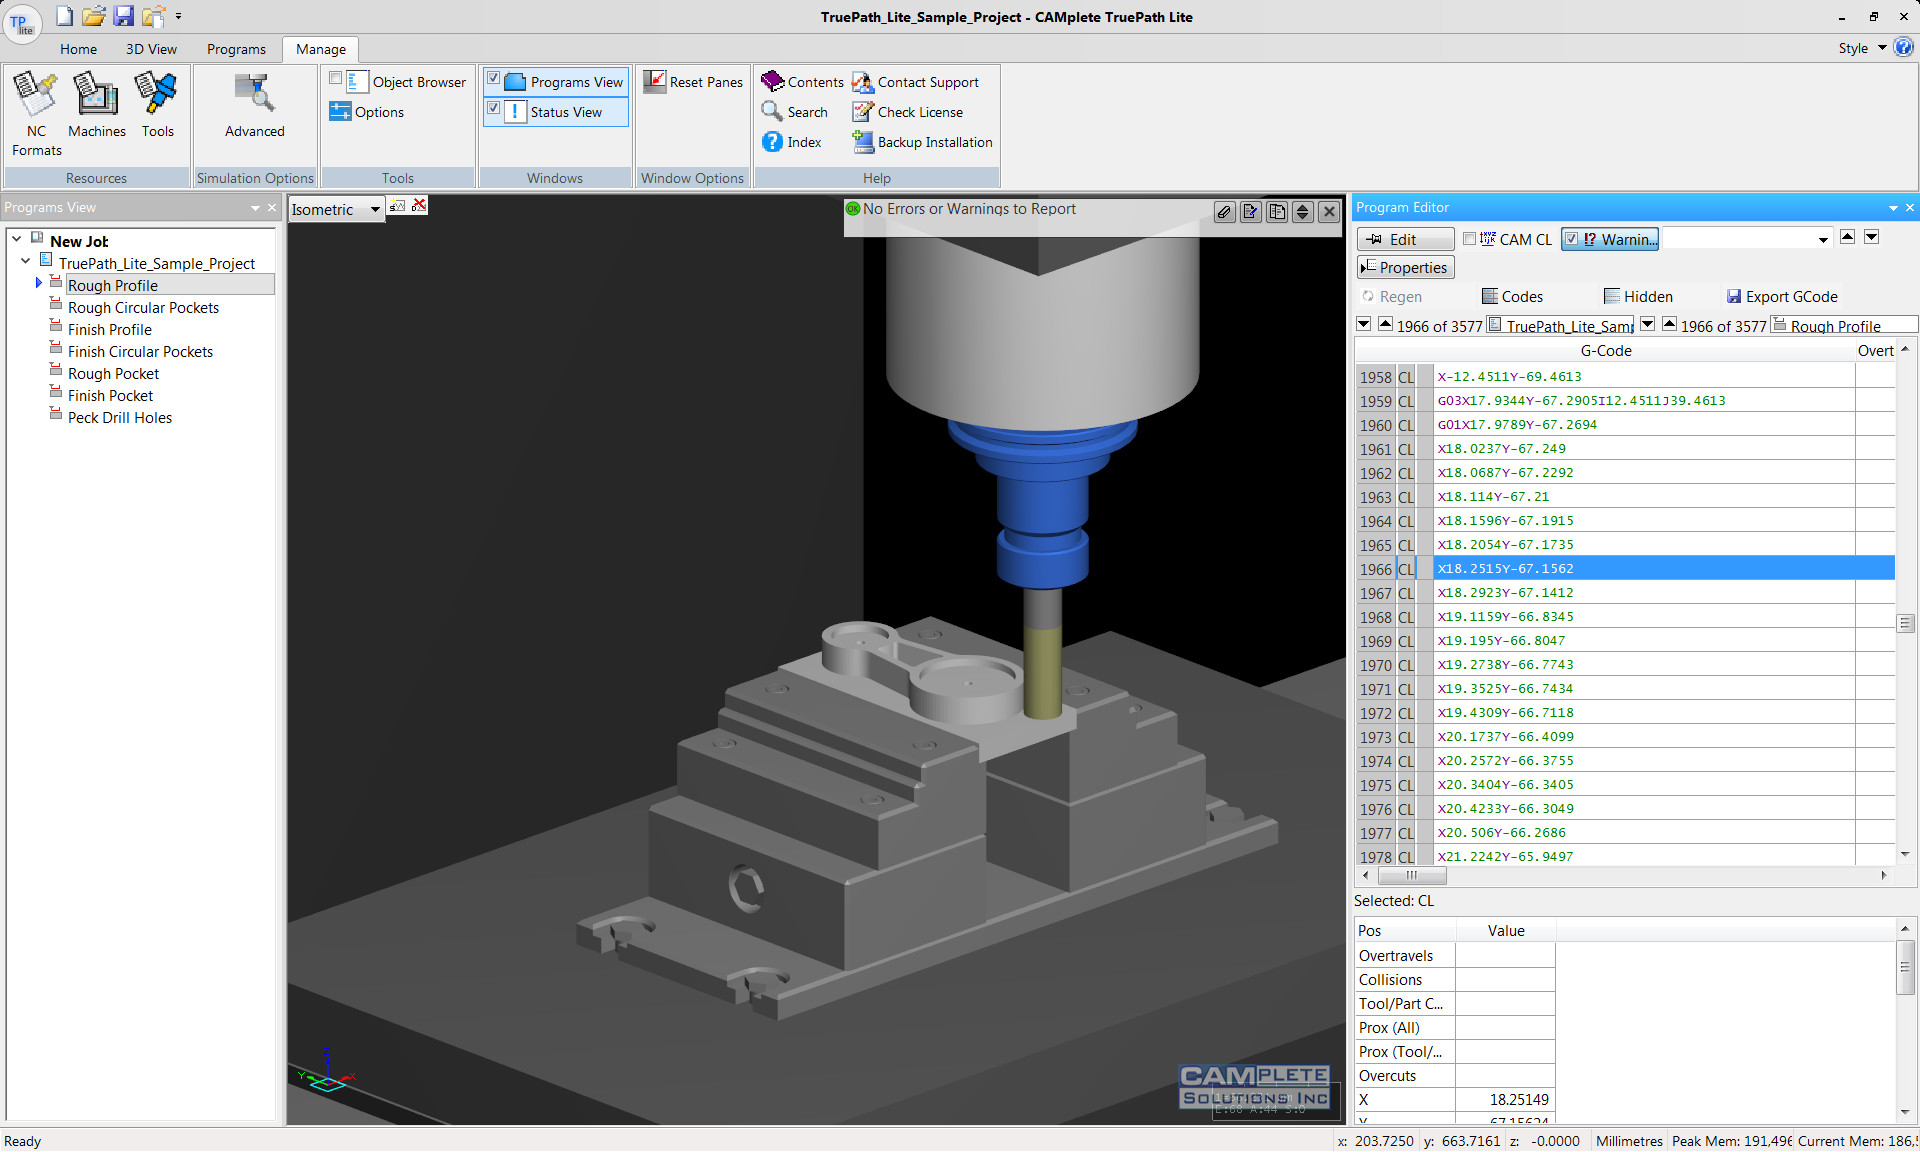 CAMplete TruePath Lite 3-Axis Simulation and Verification